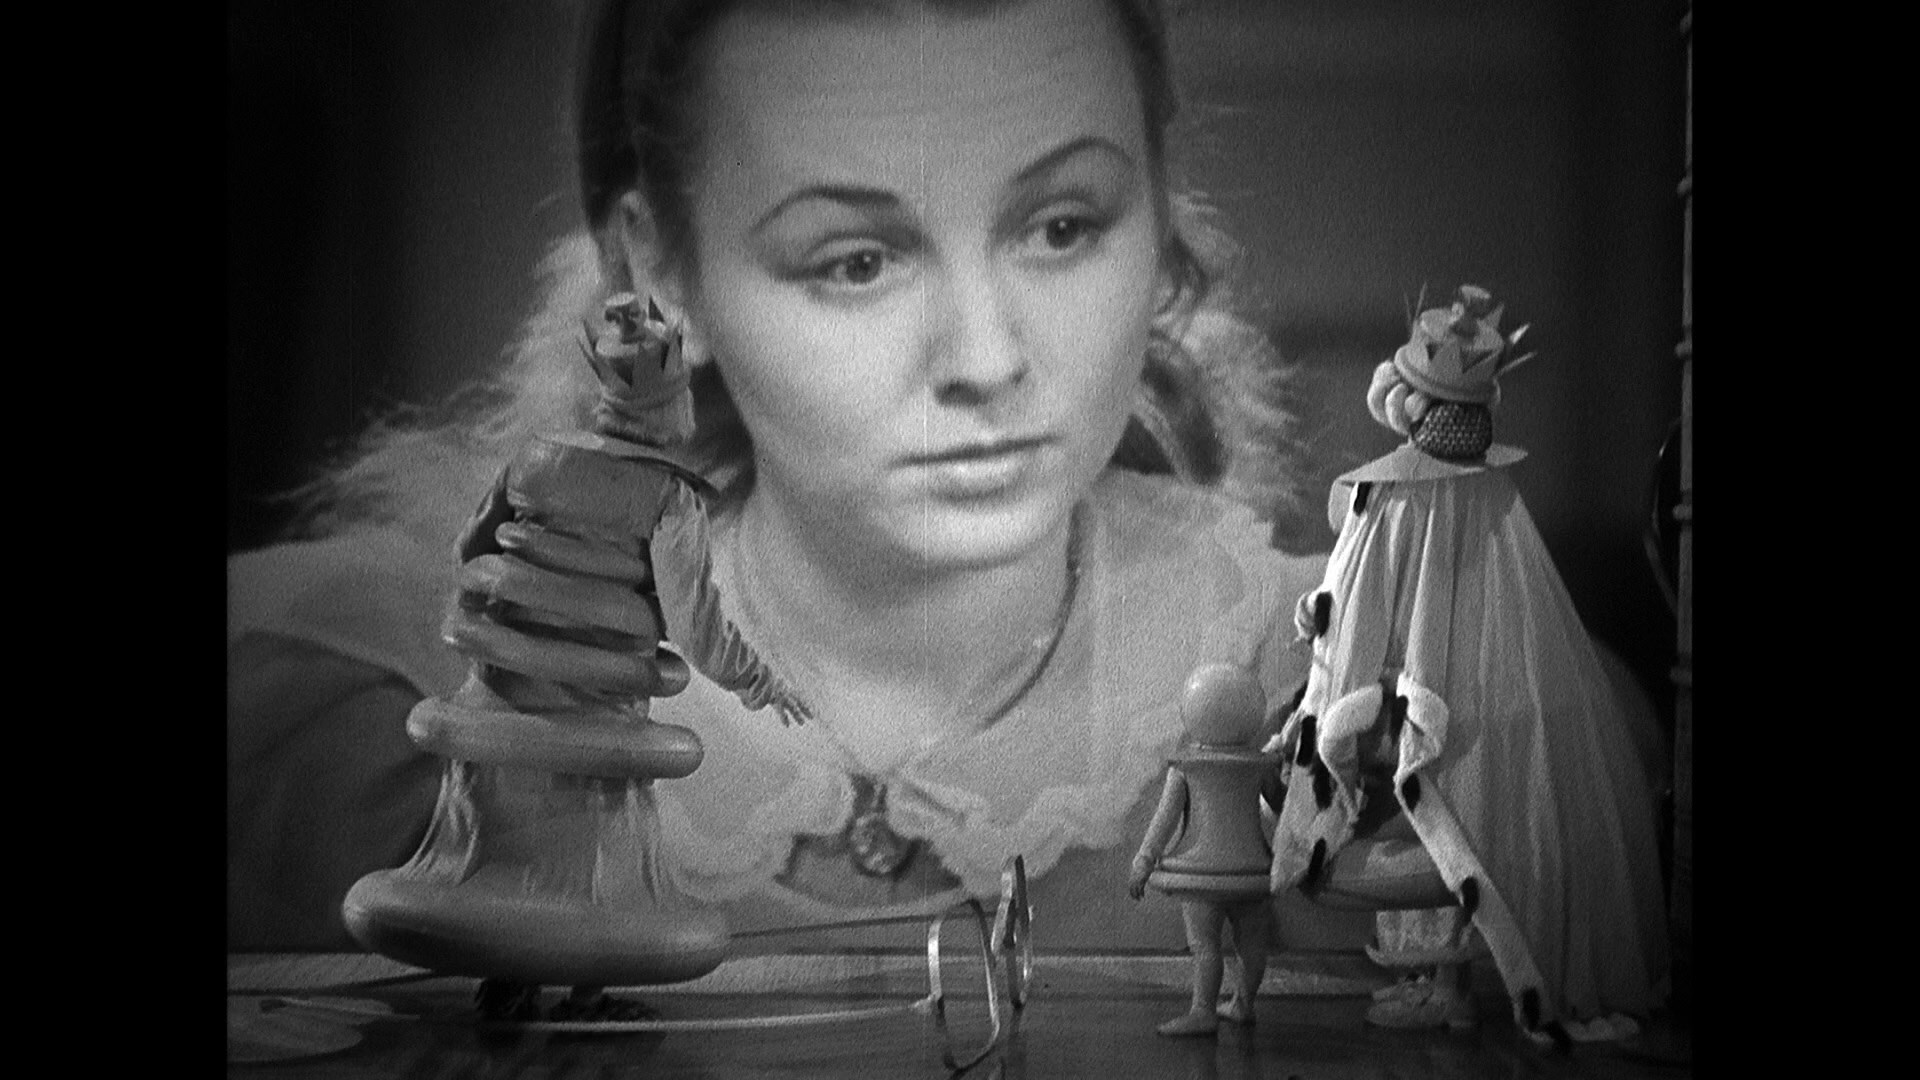 Alice in Wonderland (1933)